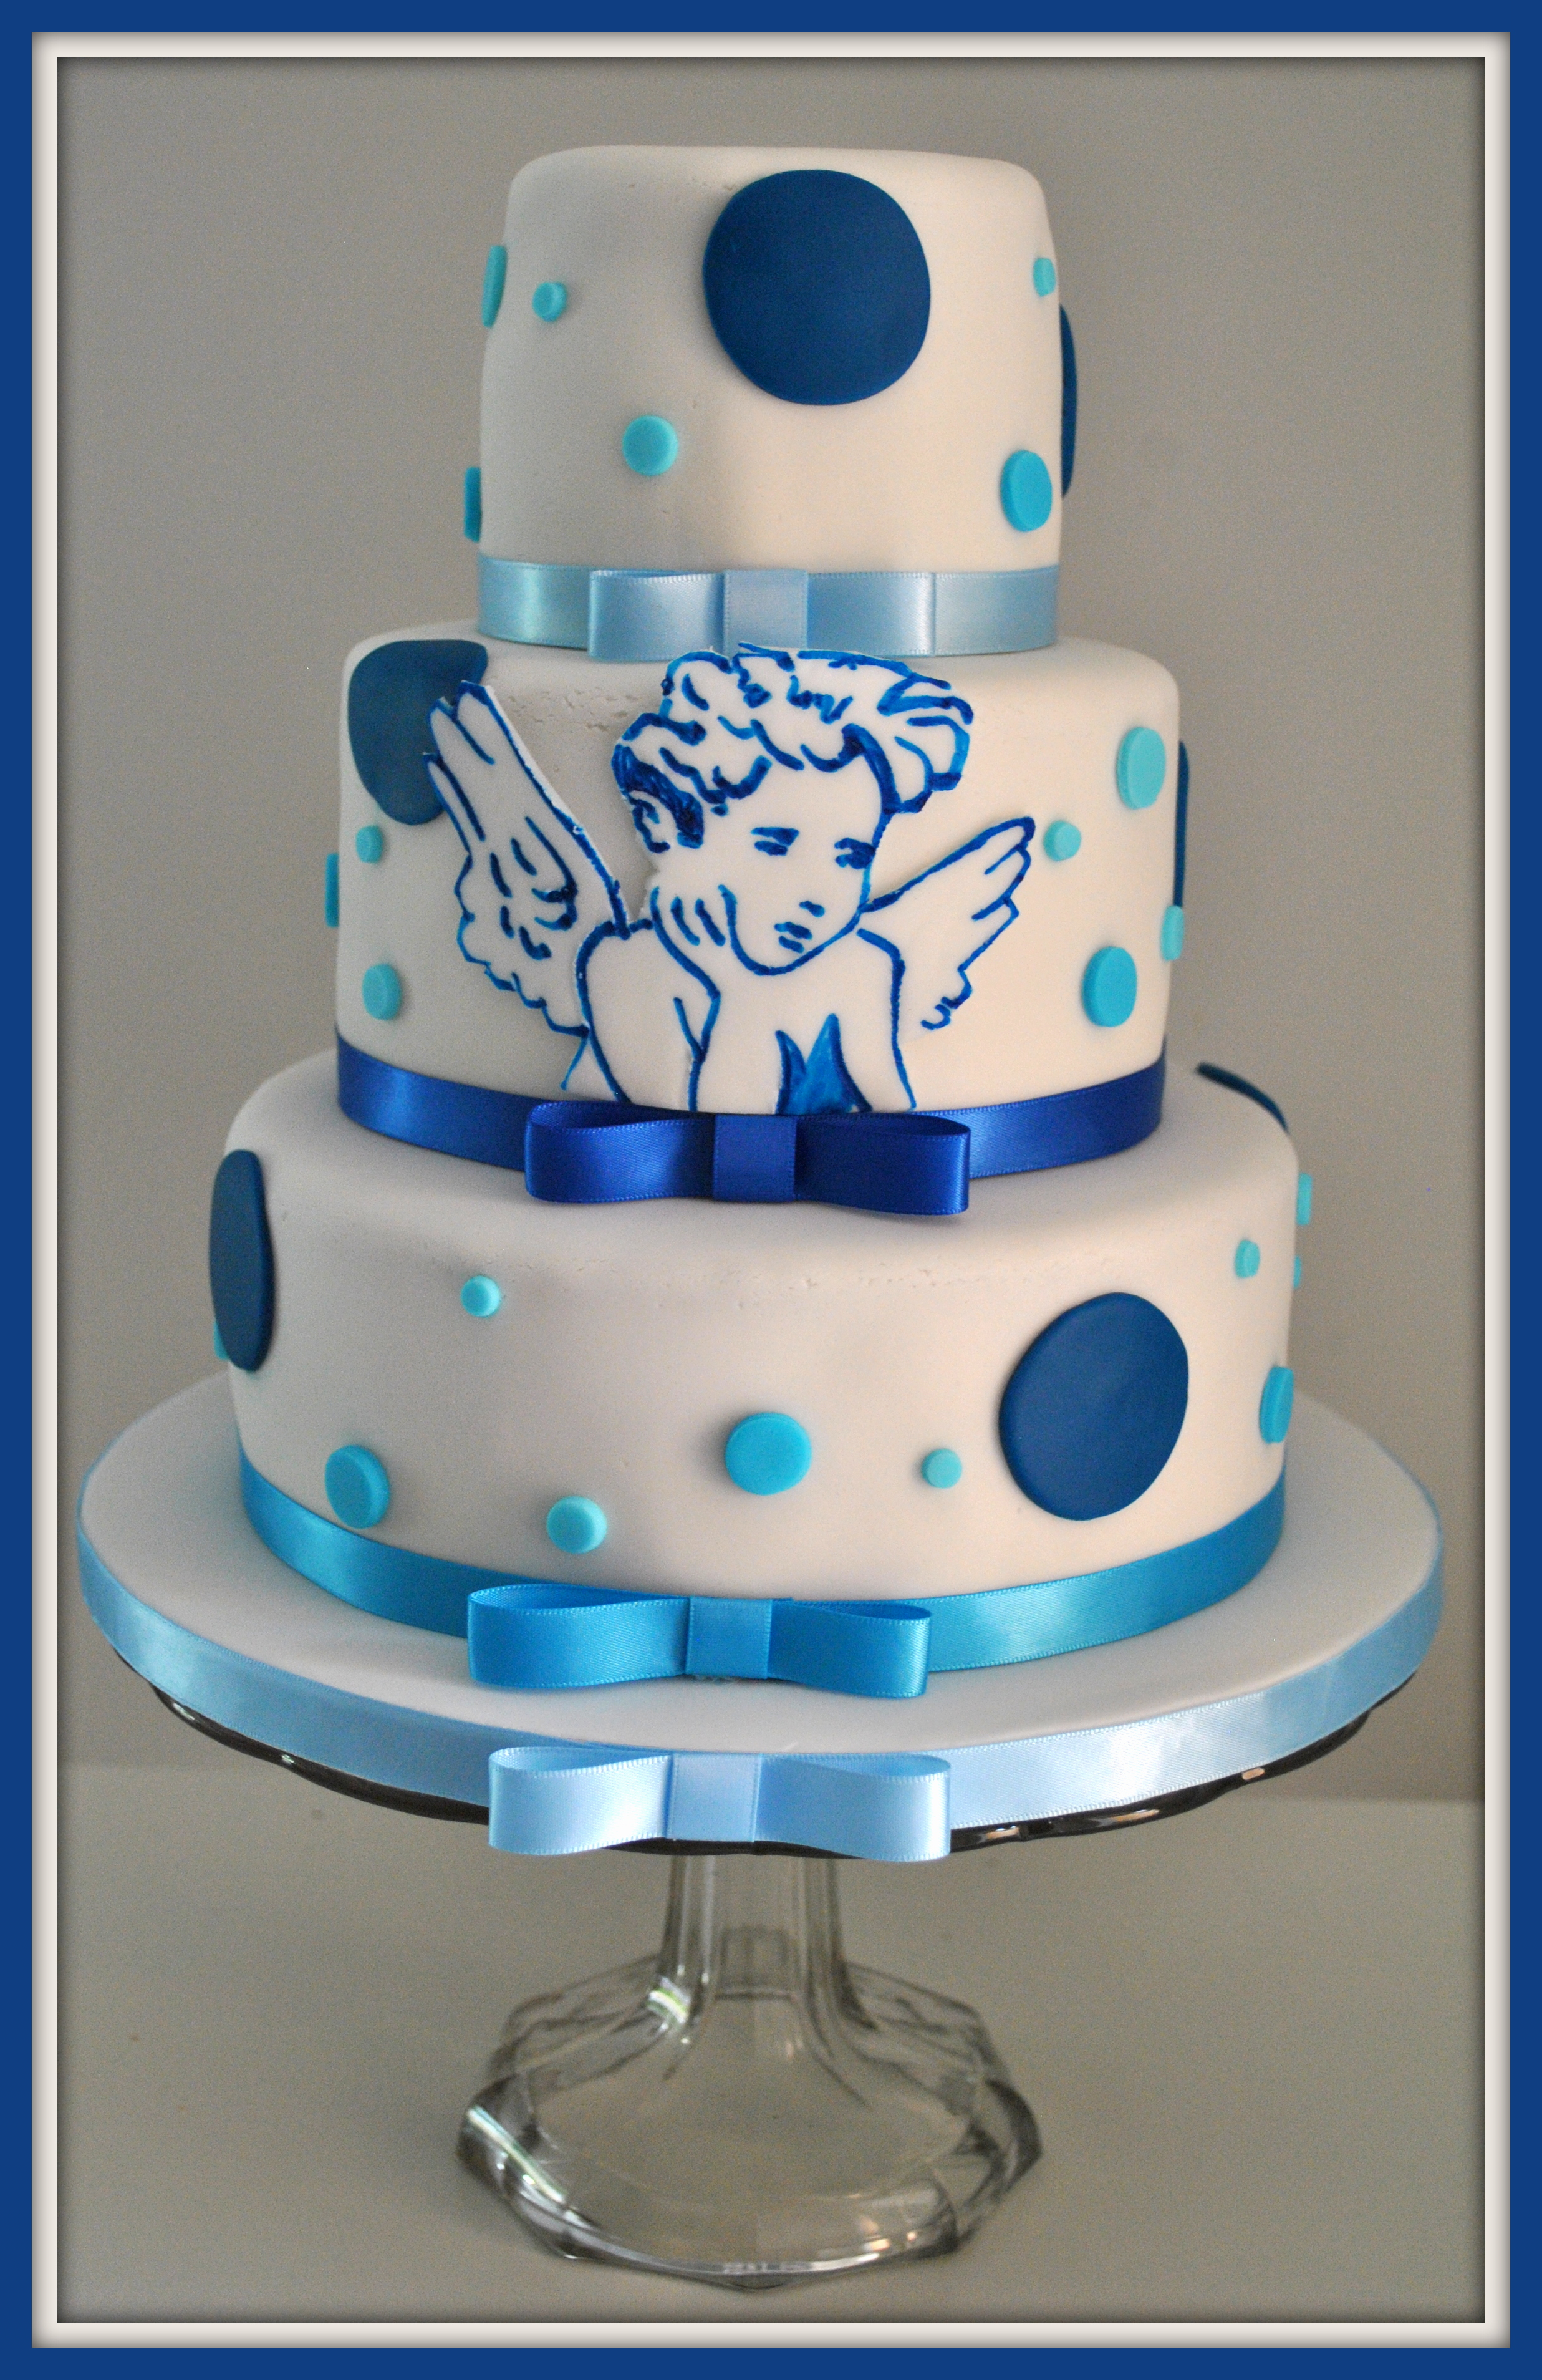 Cours Cake Design Toulouse : Cake Design - Toulouse Gateau ange bleu